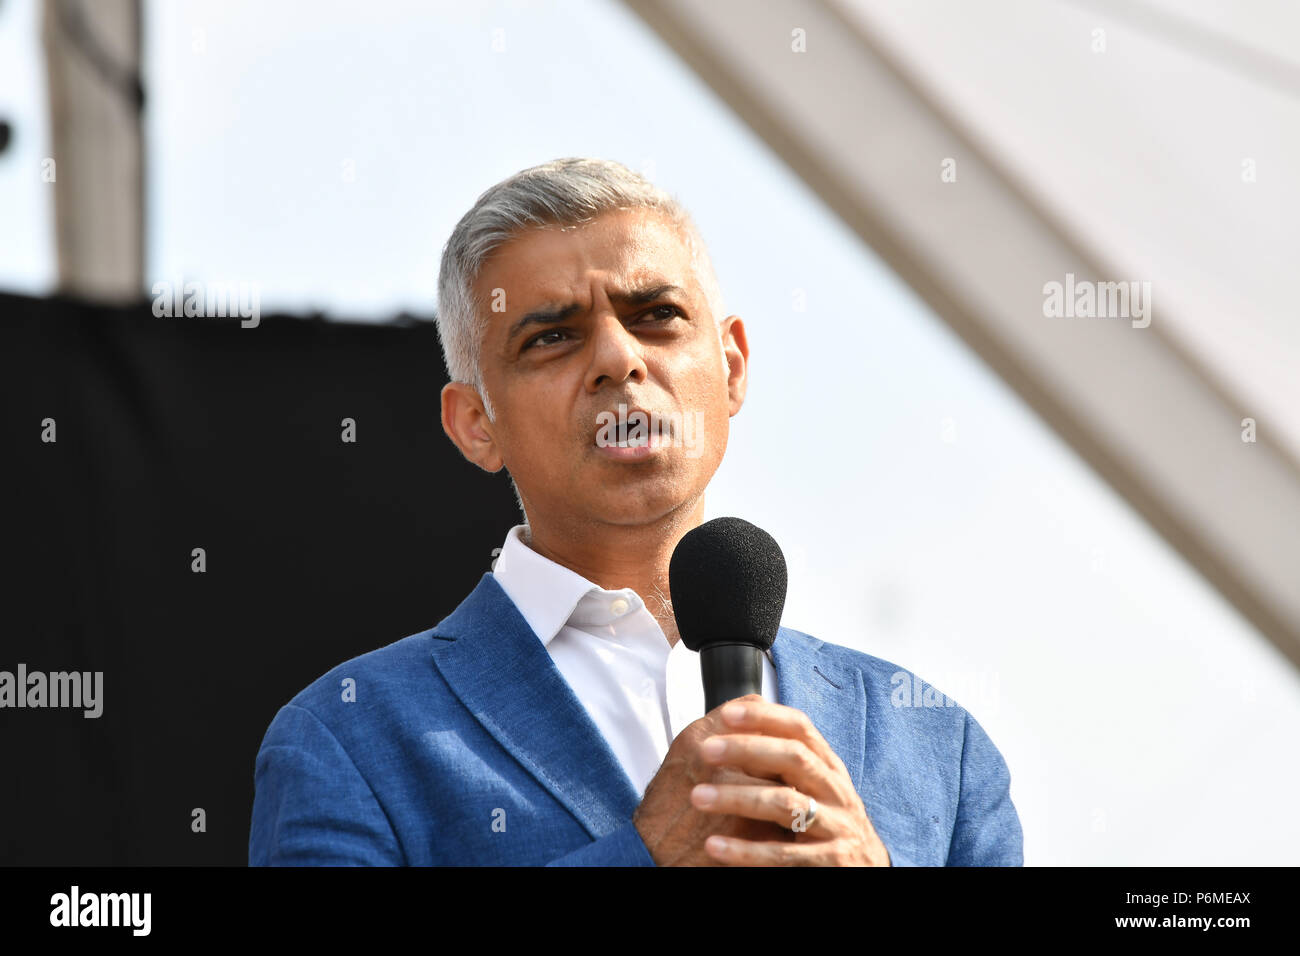 London, UK. 1st July, 2018. Speaker Sadiq Khan is the Mayor of London at the BMW Classics + live streamed on YouTube in Trafalgar Square on a hot weather in London, UK on July 1st 2018. Credit: Picture Capital/Alamy Live News - Stock Image